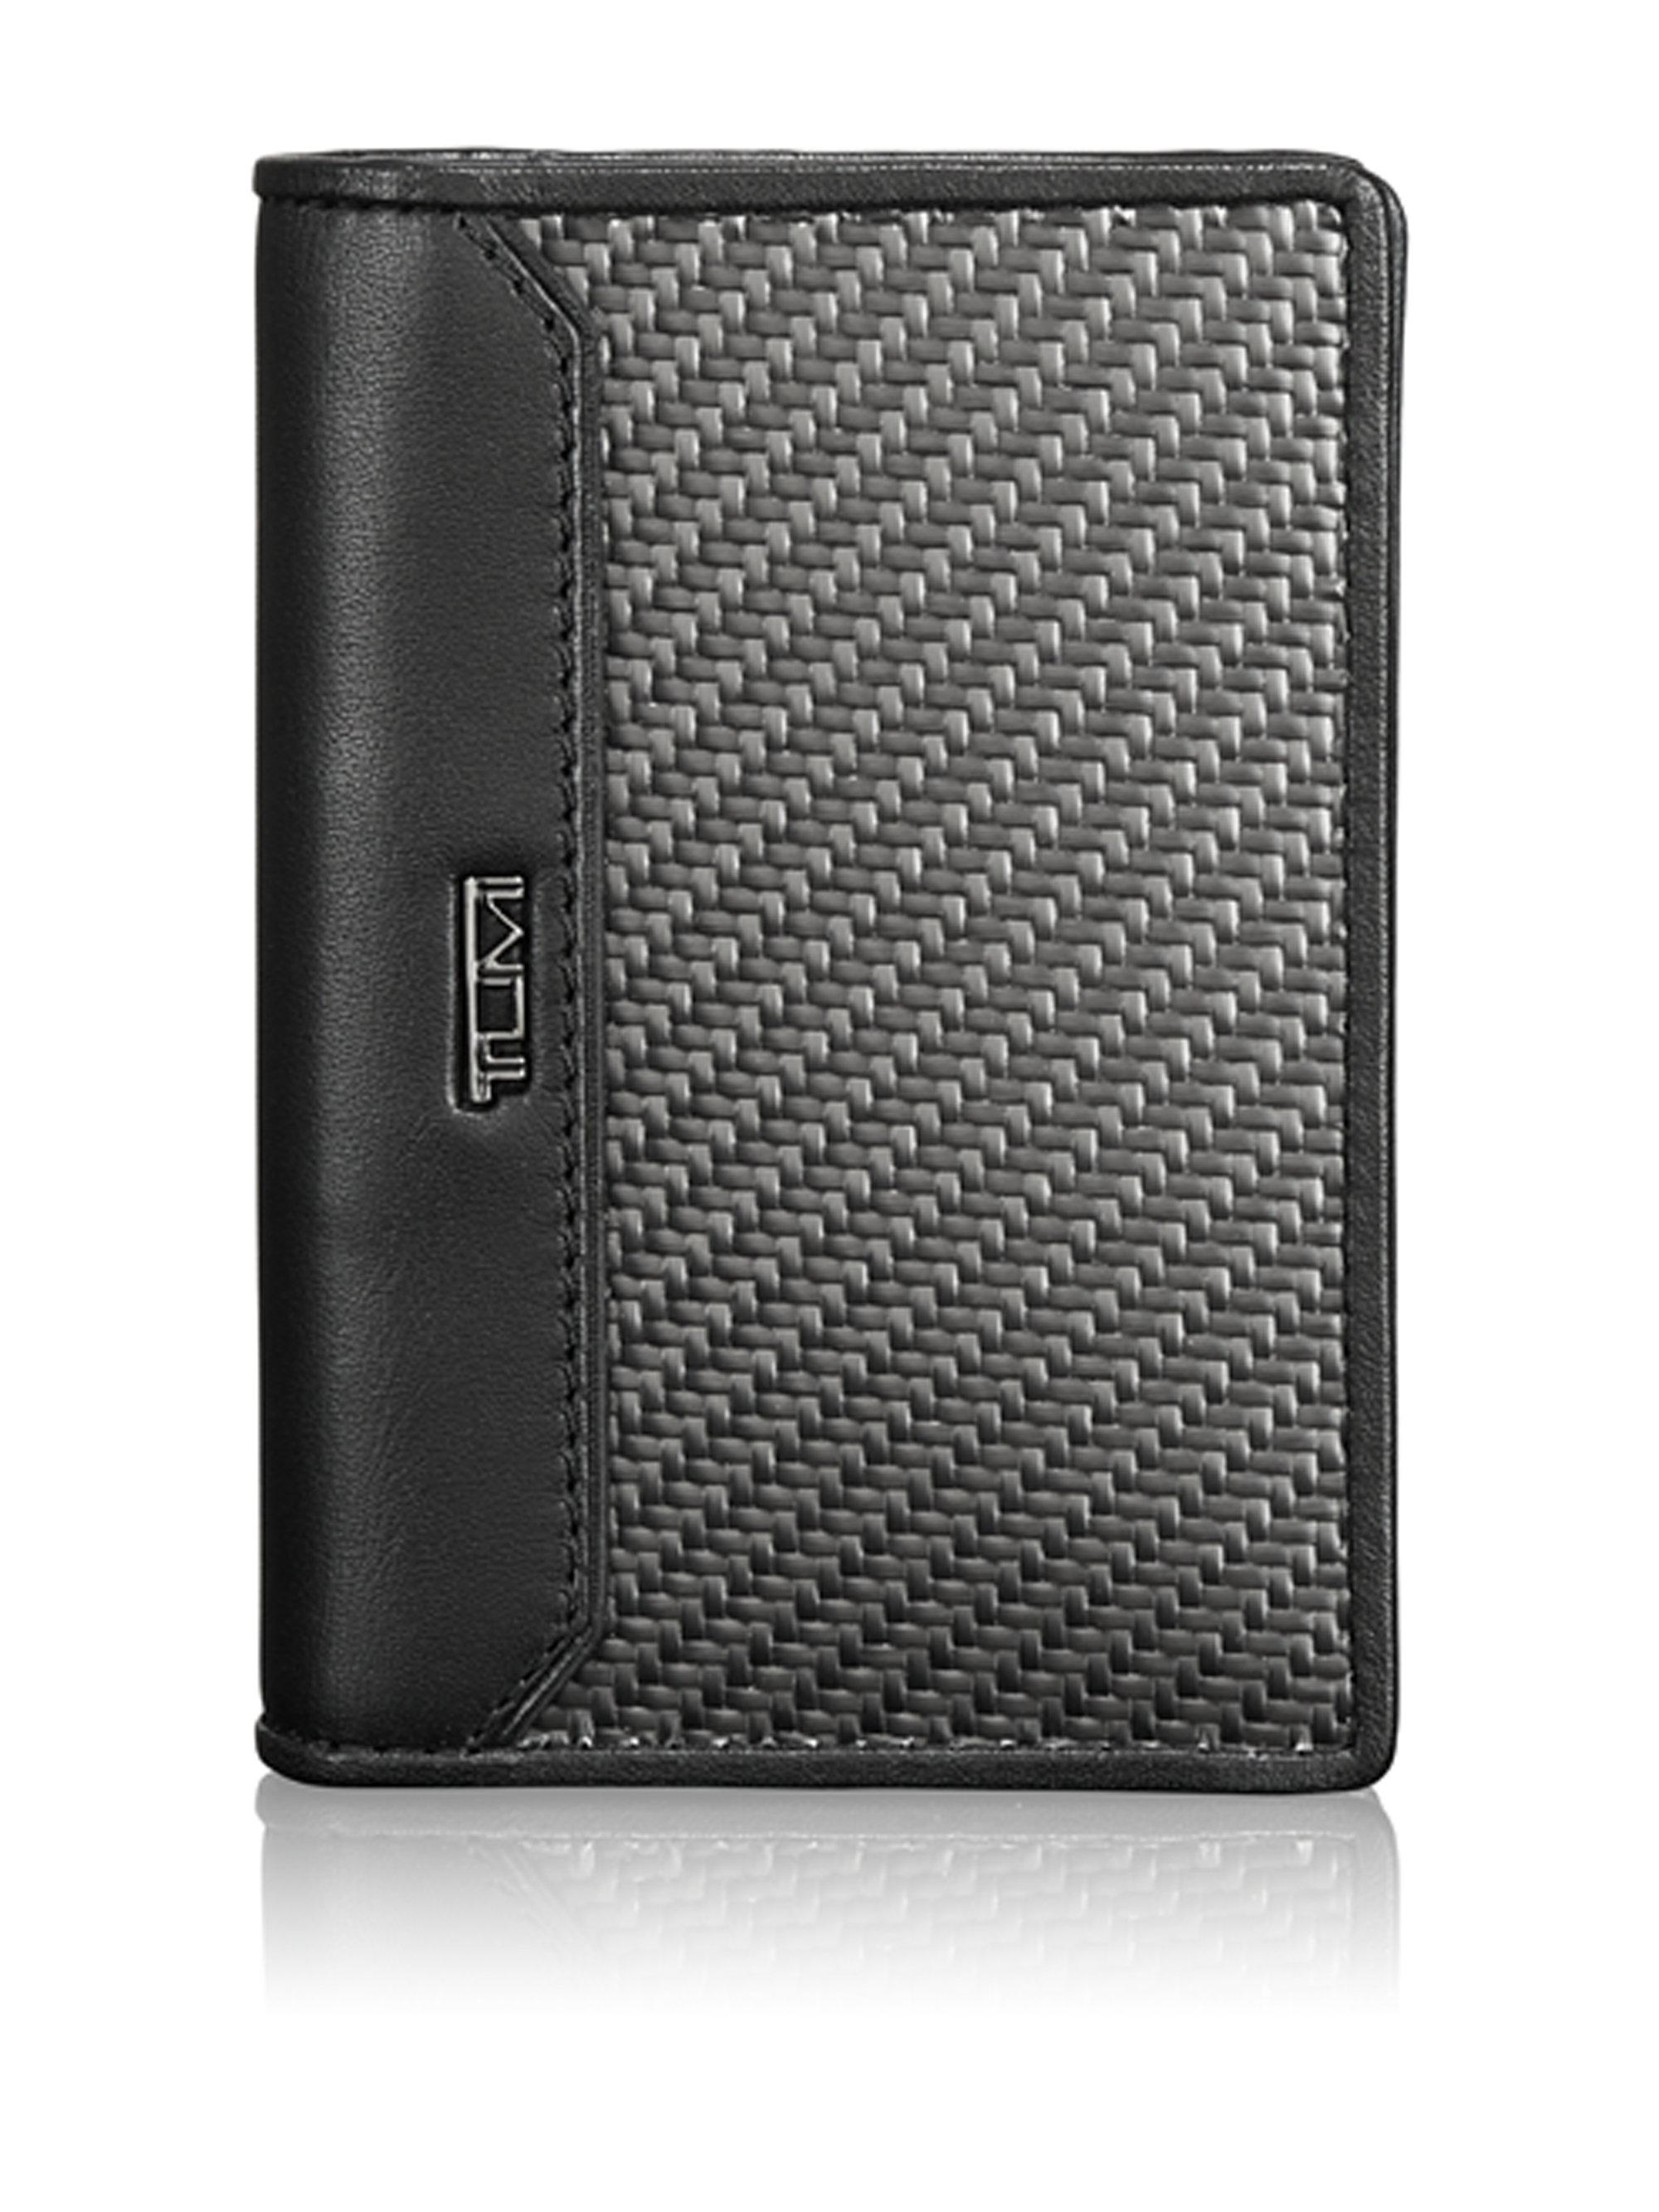 Lyst - Tumi Cfx Carbon Fiber Gusseted Card Case in Black for Men